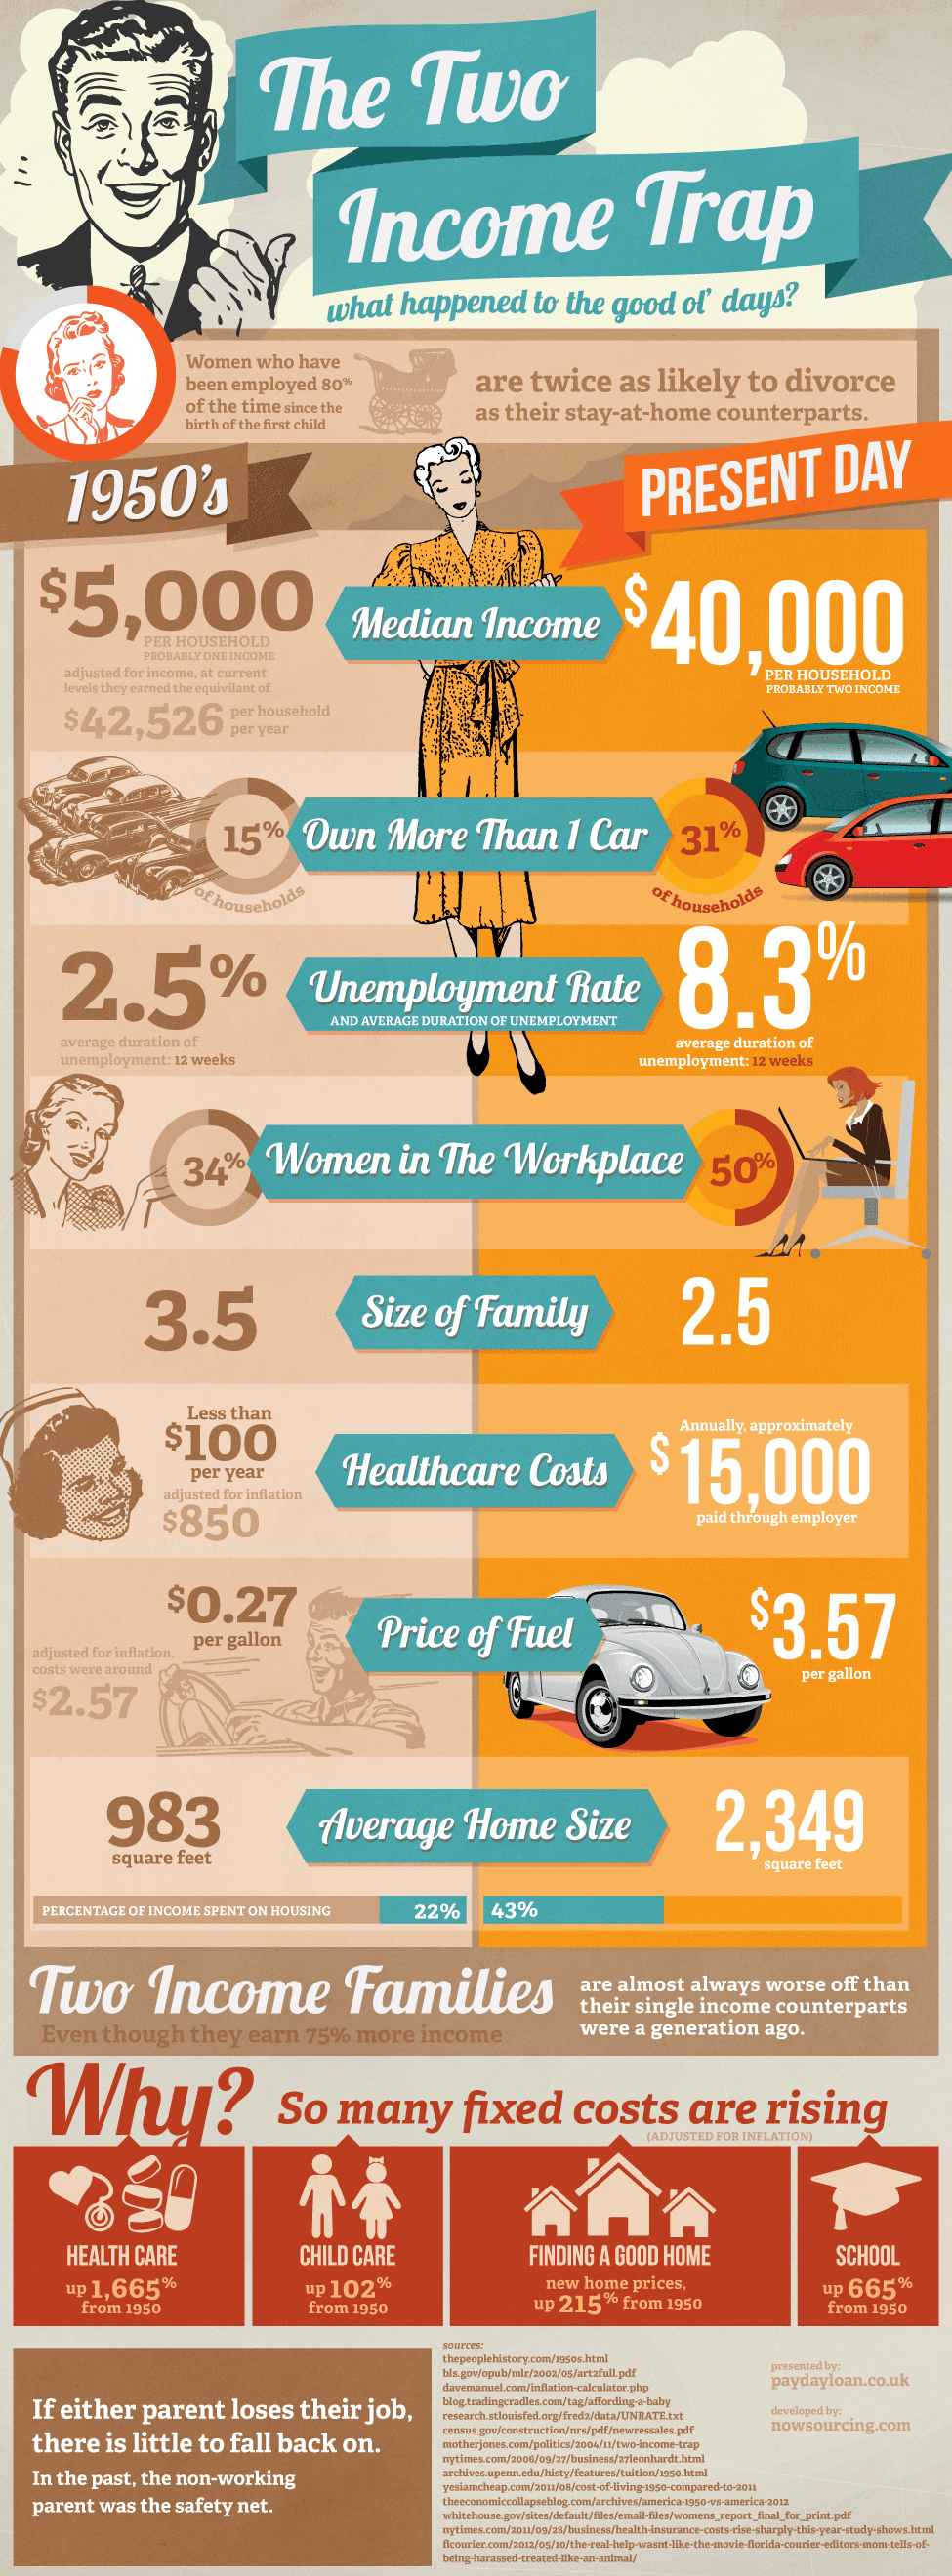 Two Income Trap Infographic